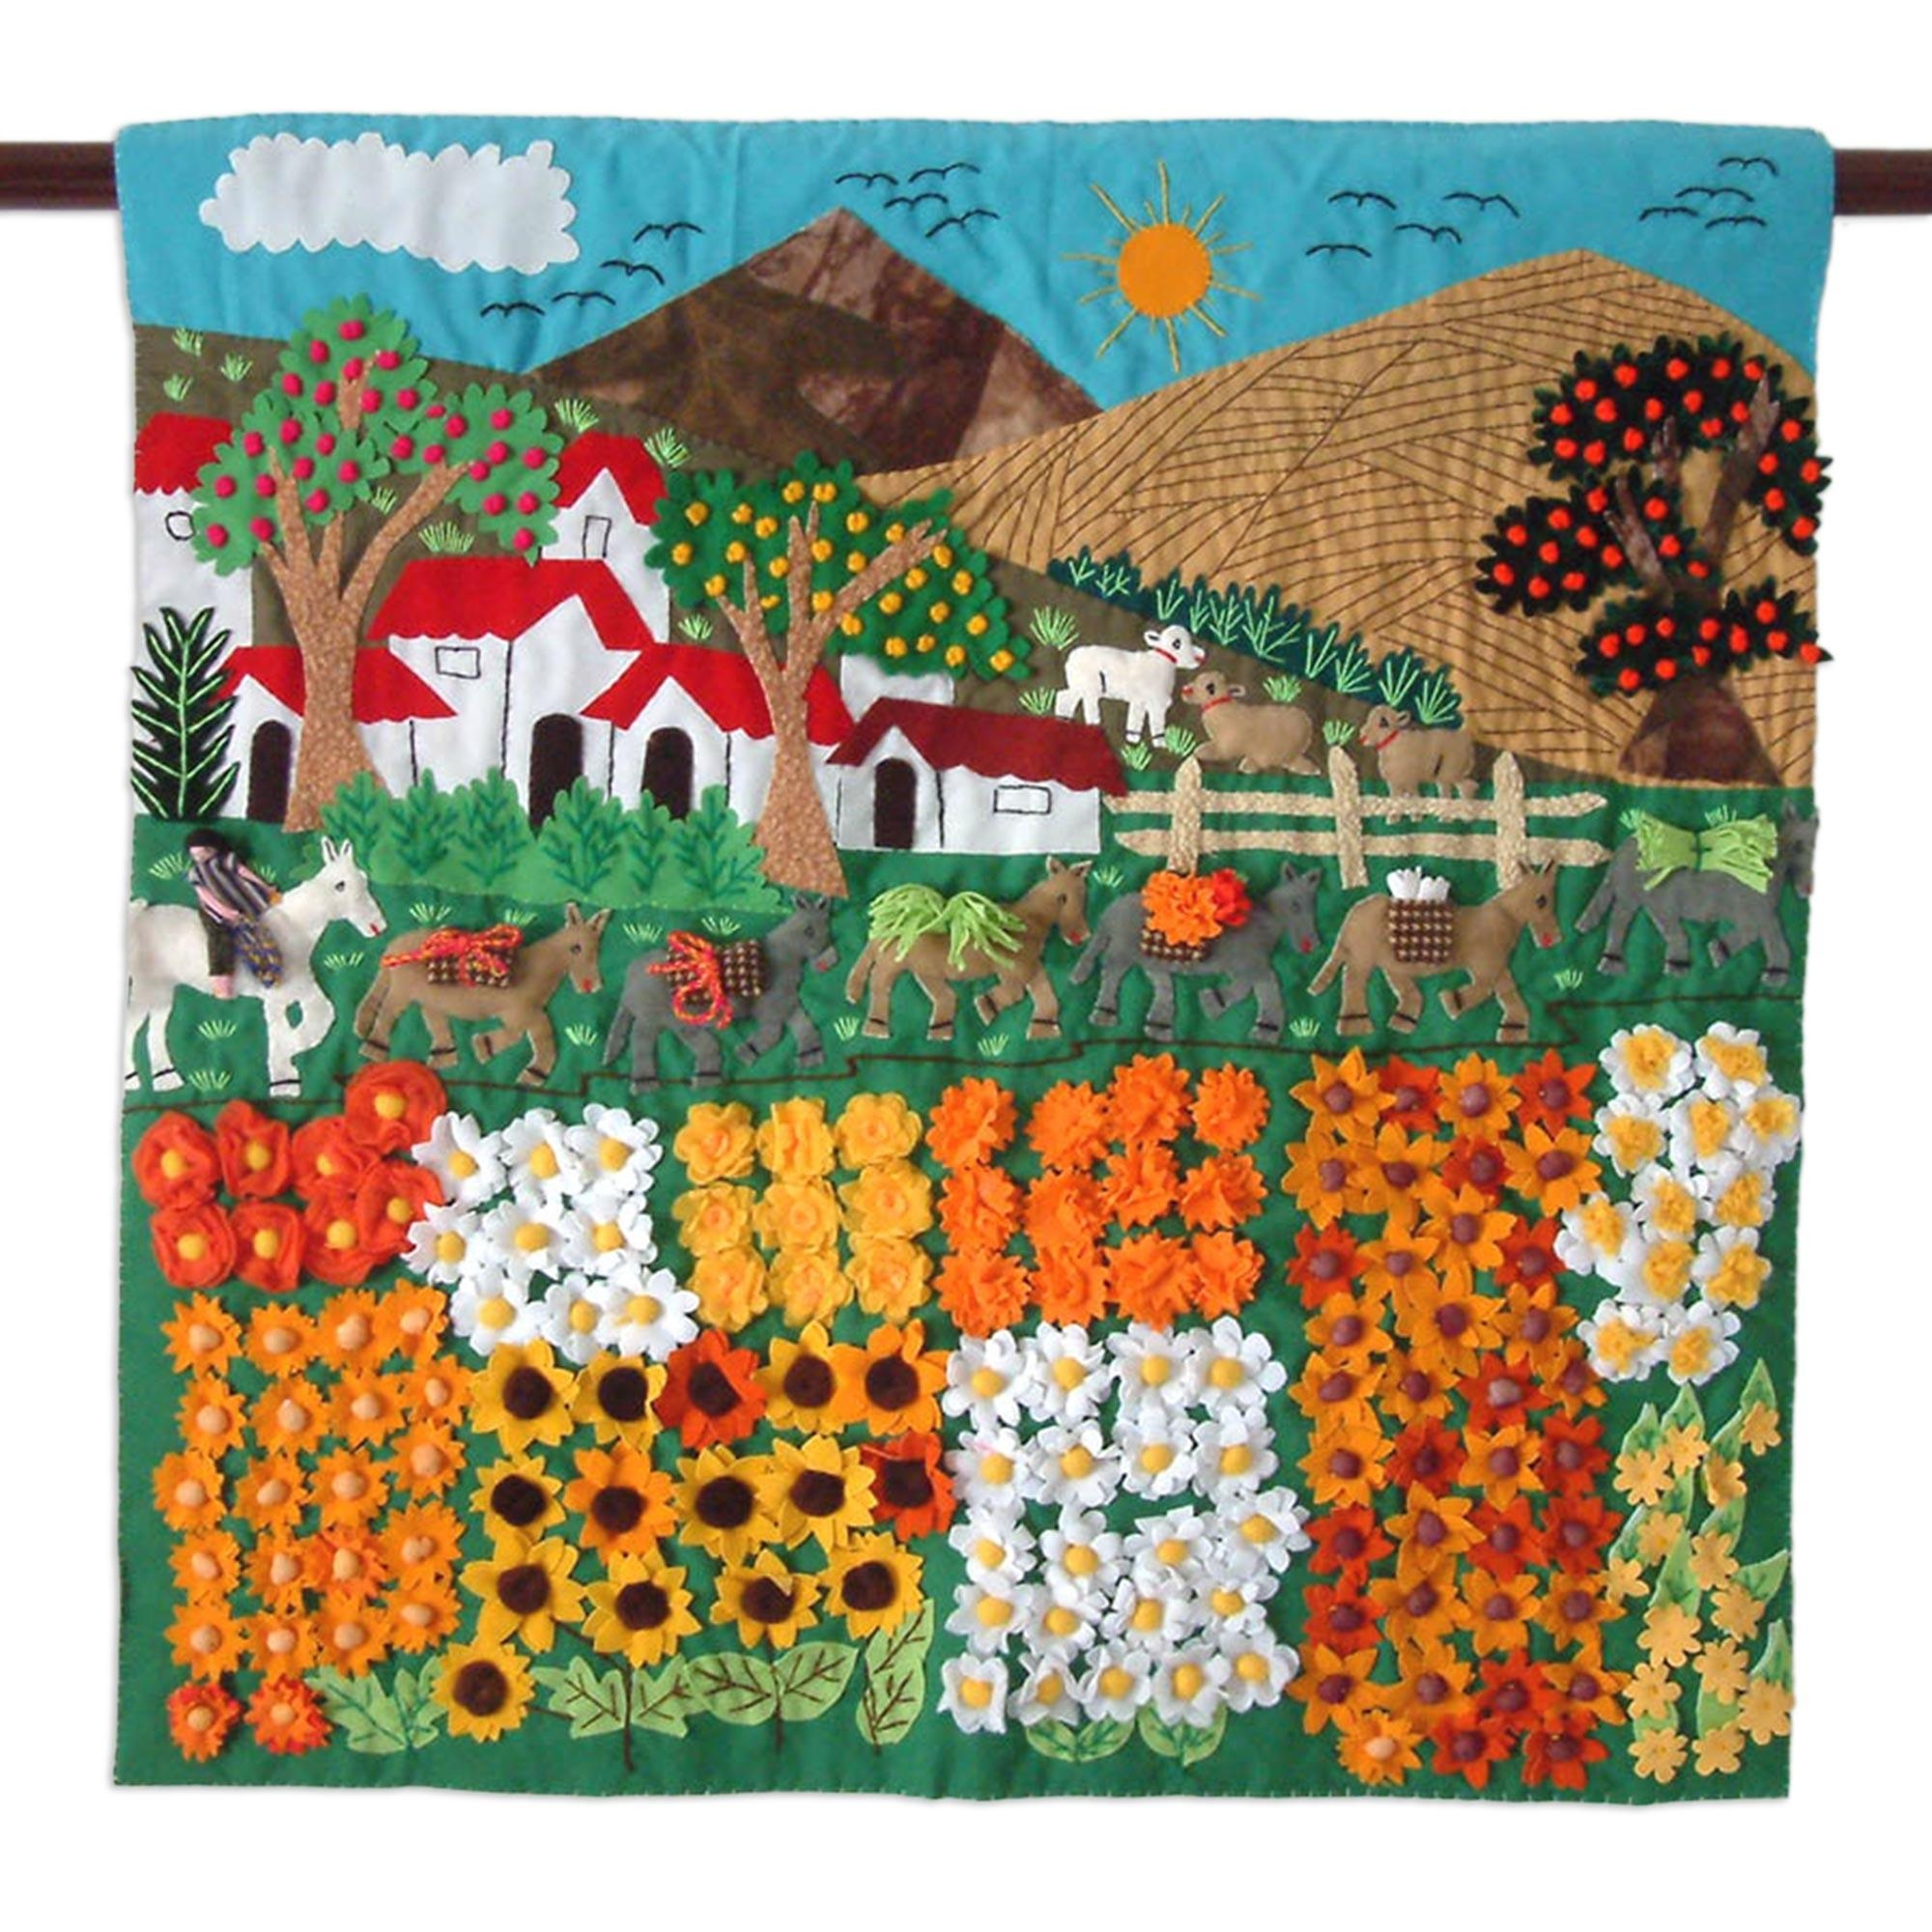 Hand Crafted Peruvian Folk Art Applique Wall Hanging – Sunflower In Peruvian Wall Art (Image 7 of 20)